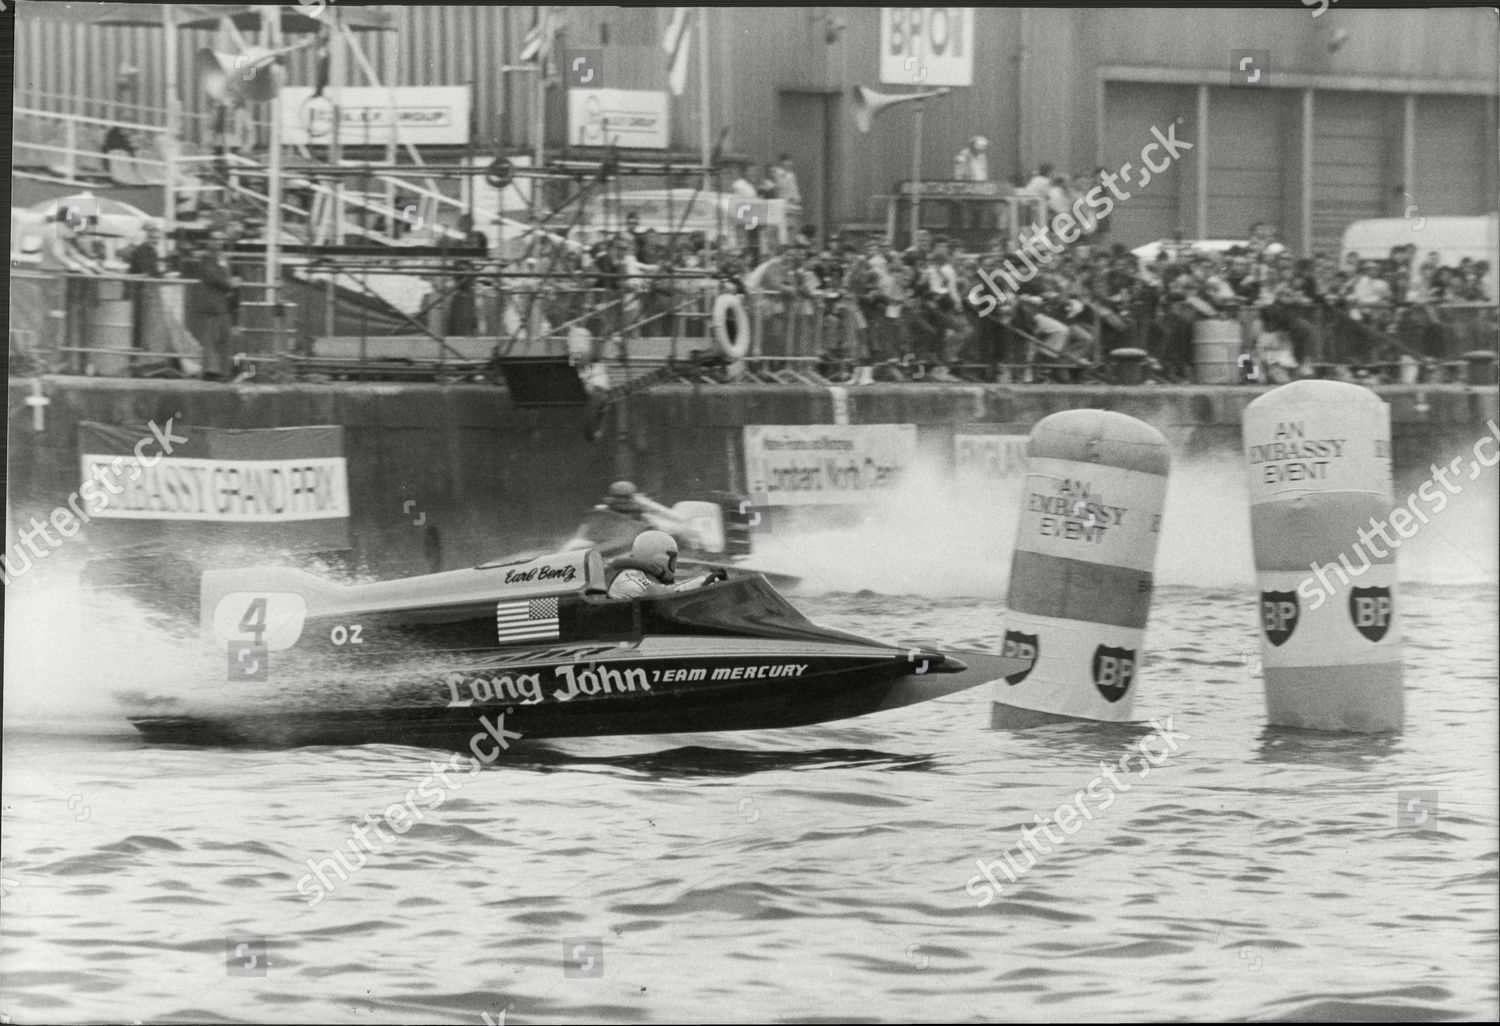 Motor Boats Powerboats Racing 1979 British Docks Editorial Stock